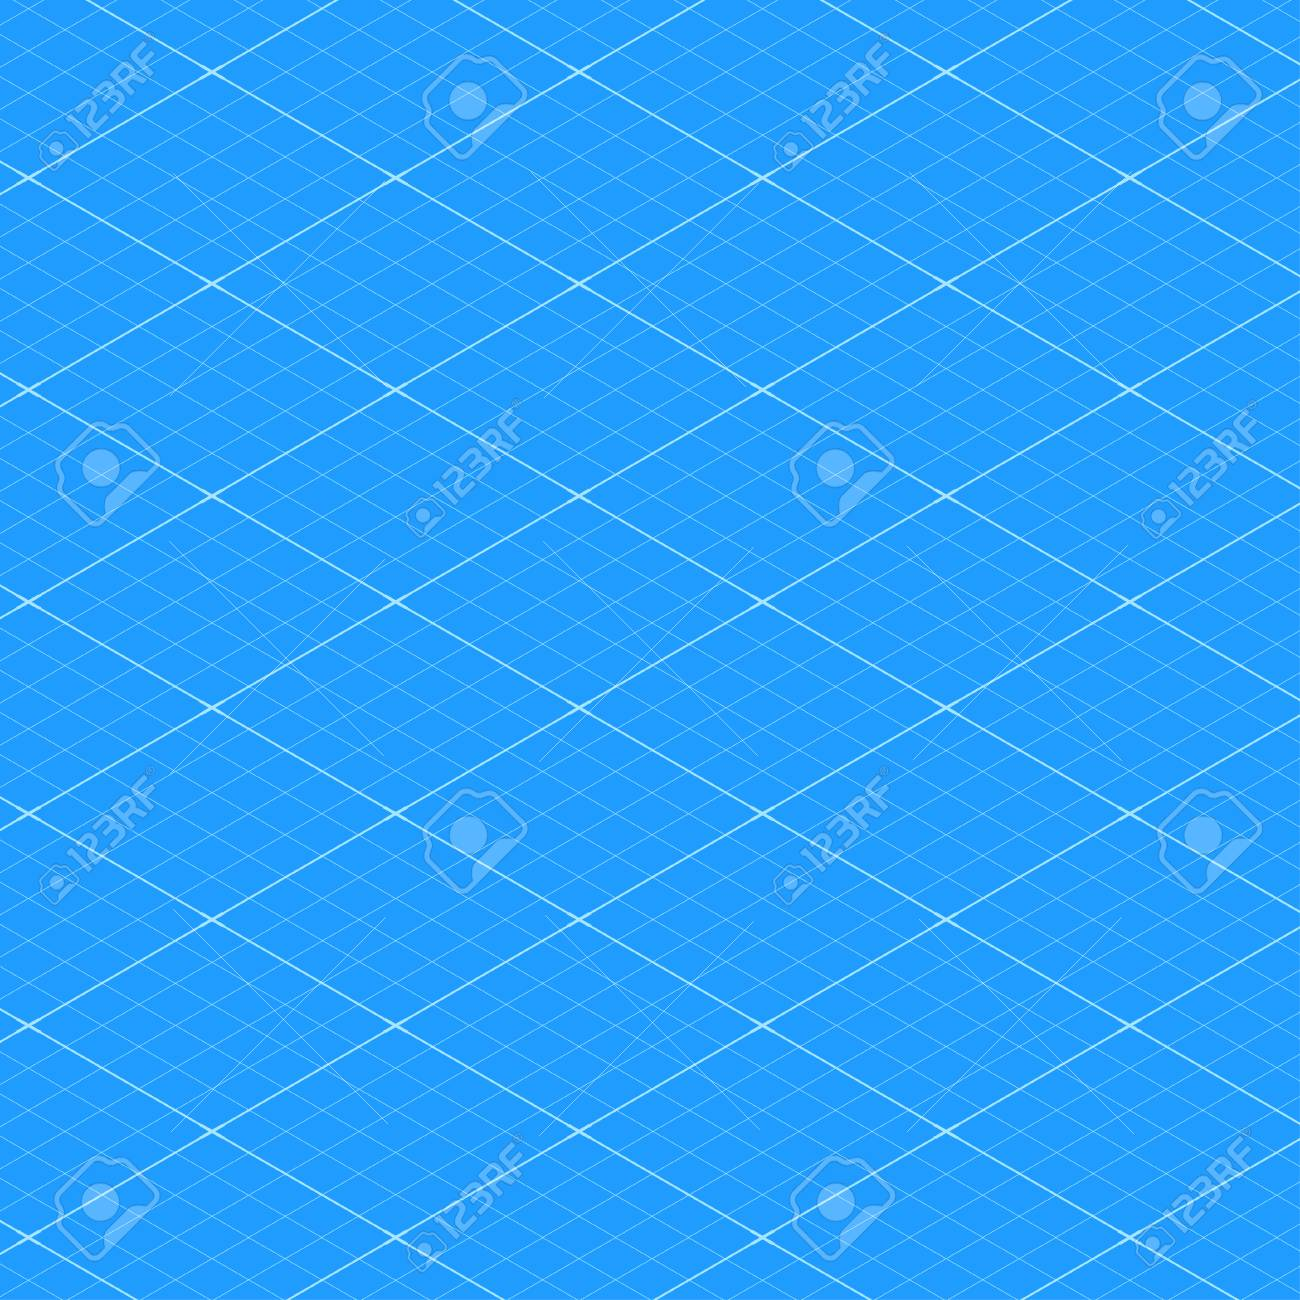 Isometric blueprint grid seamless pattern background texture vector isometric blueprint grid seamless pattern background texture vector illustration foto de archivo 88119600 malvernweather Gallery